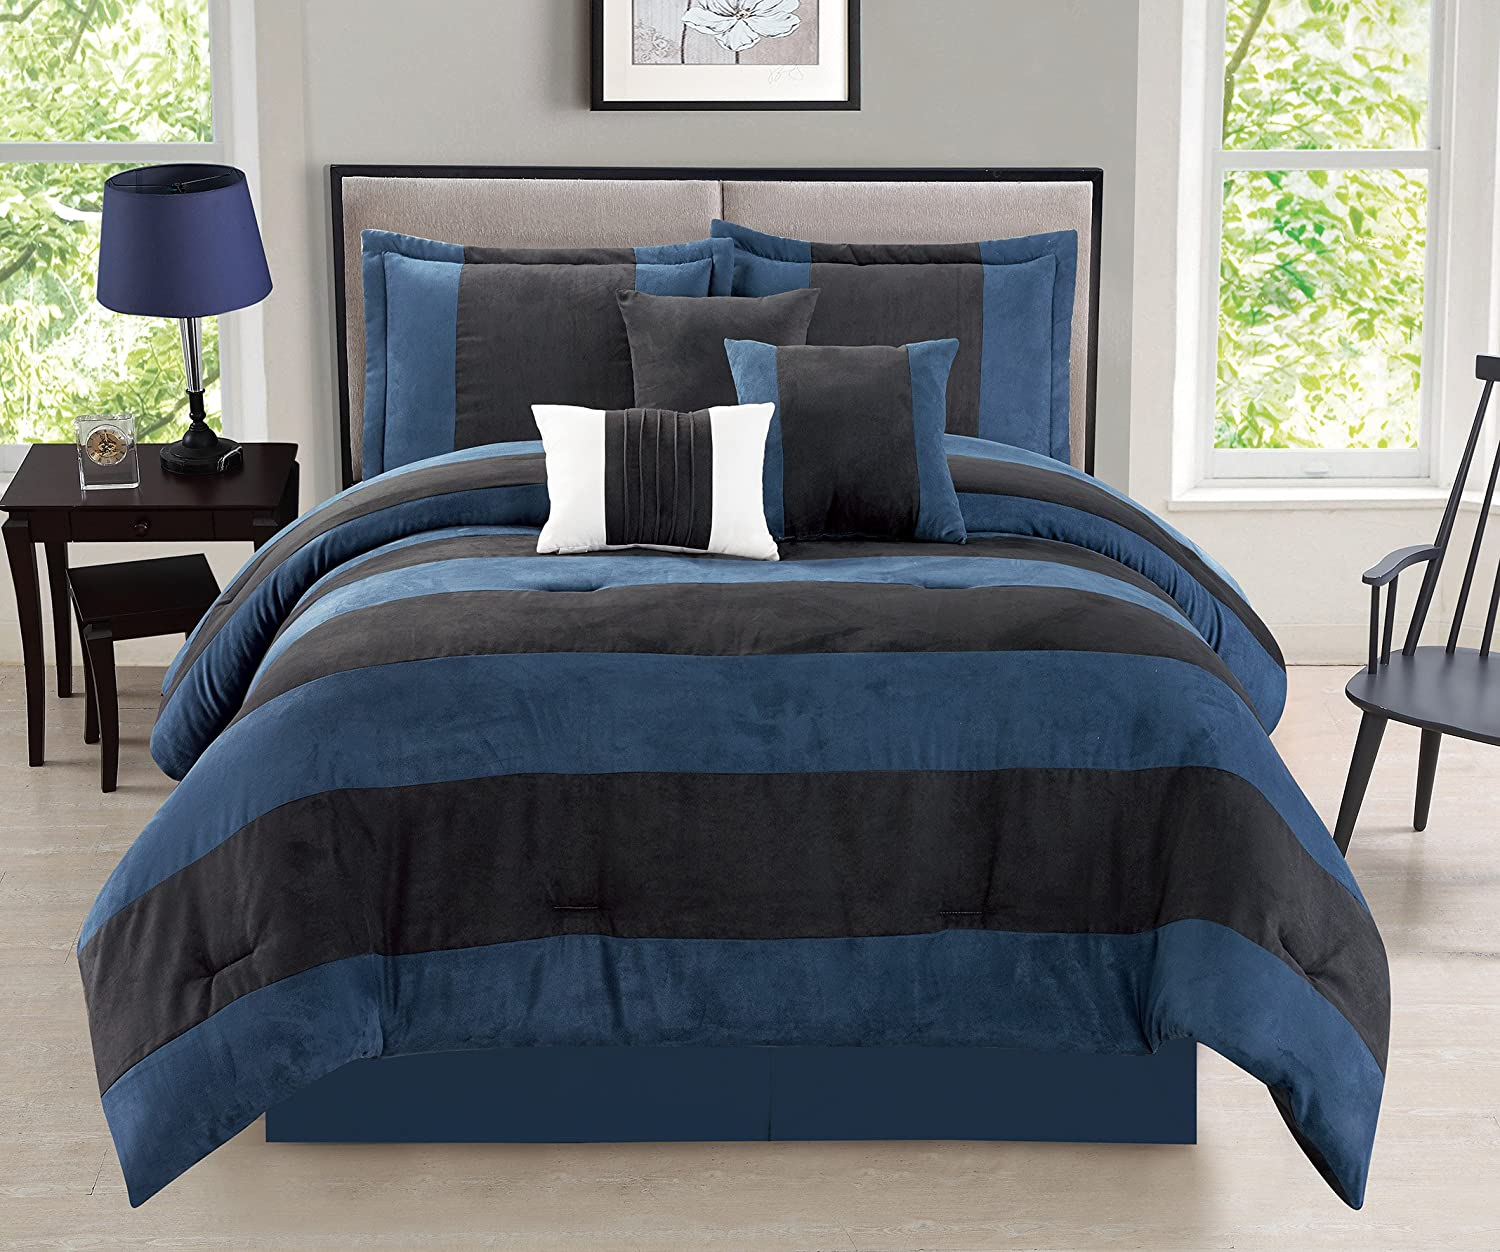 luxurious Navy Van Dam 7 Piece Micro Suede Soft Comforter Set - Bed in a Bag